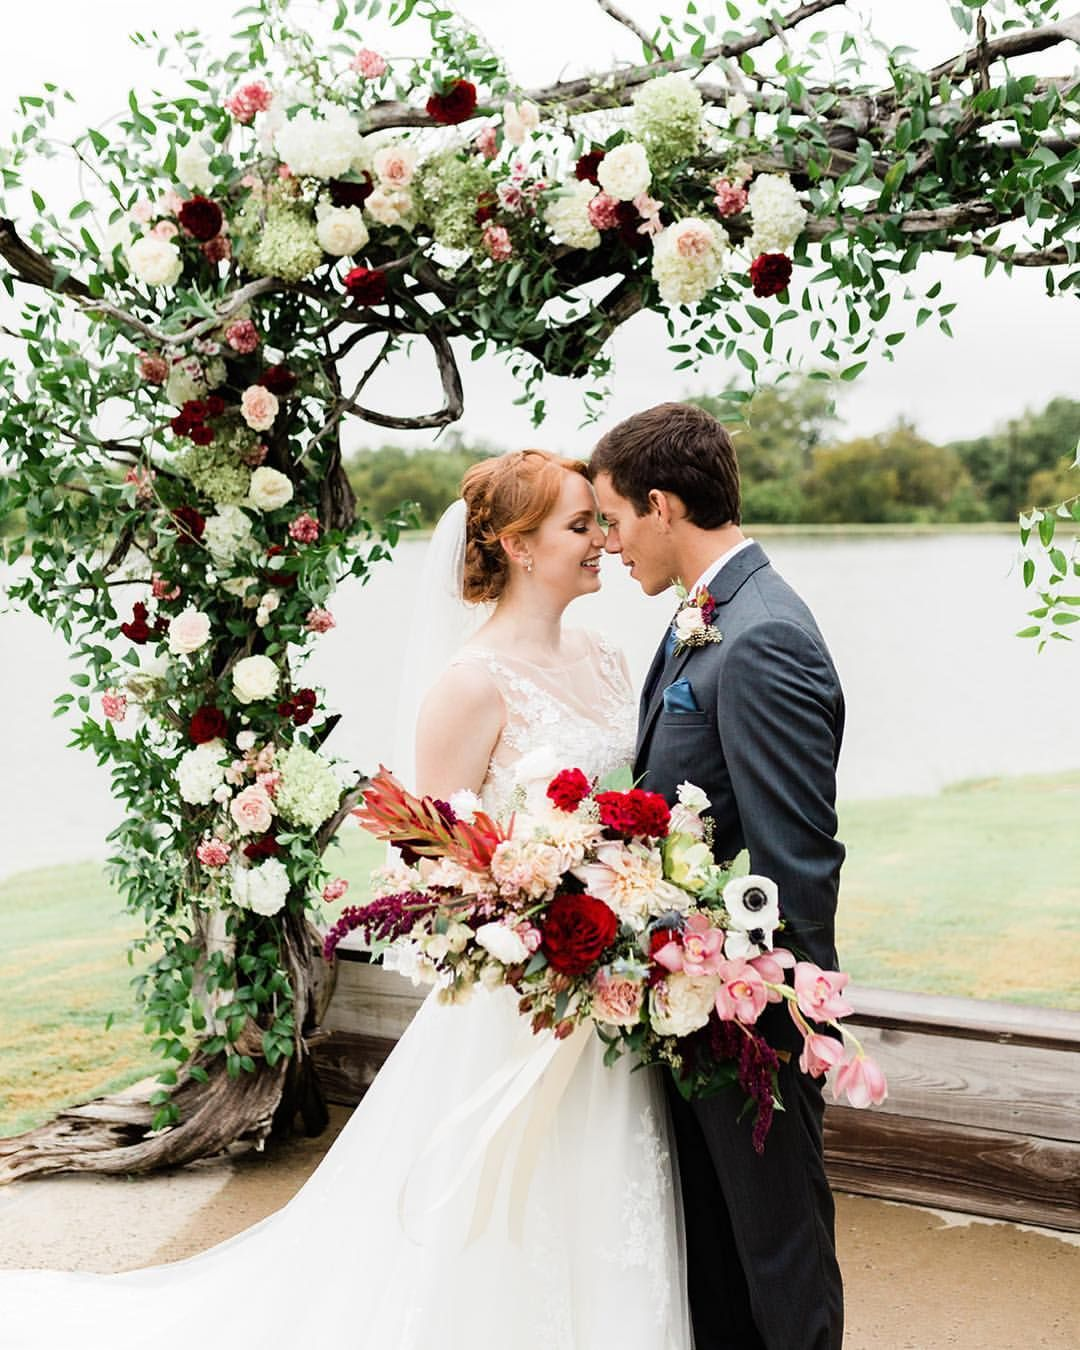 Beautiful Floral Arch For Precious Couple's Outdoor Ranch